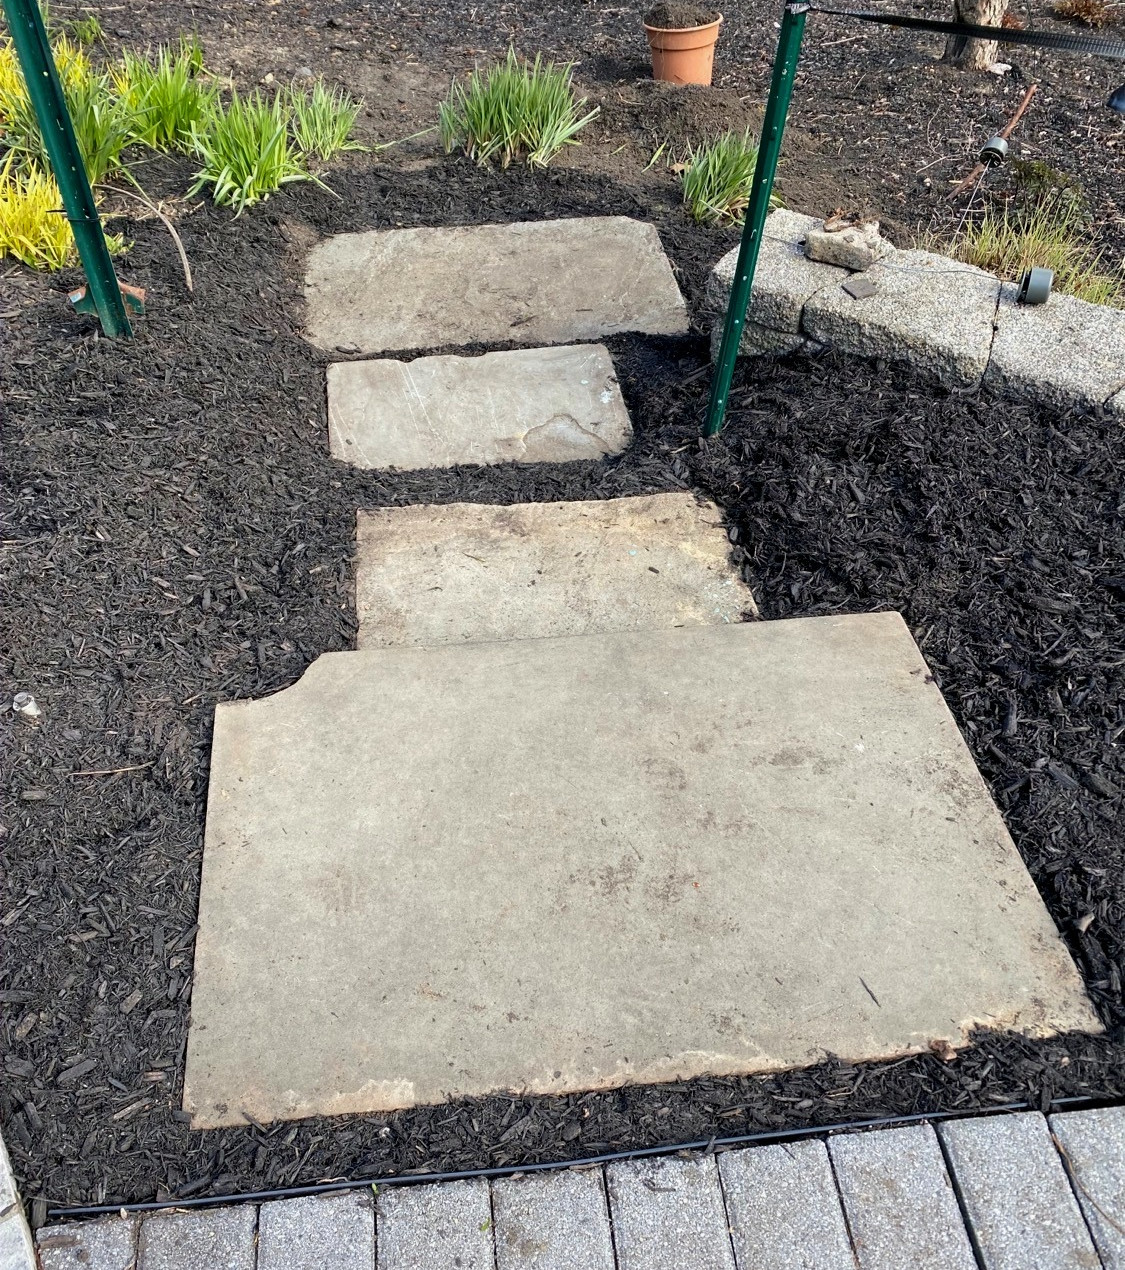 The view down into garden bed